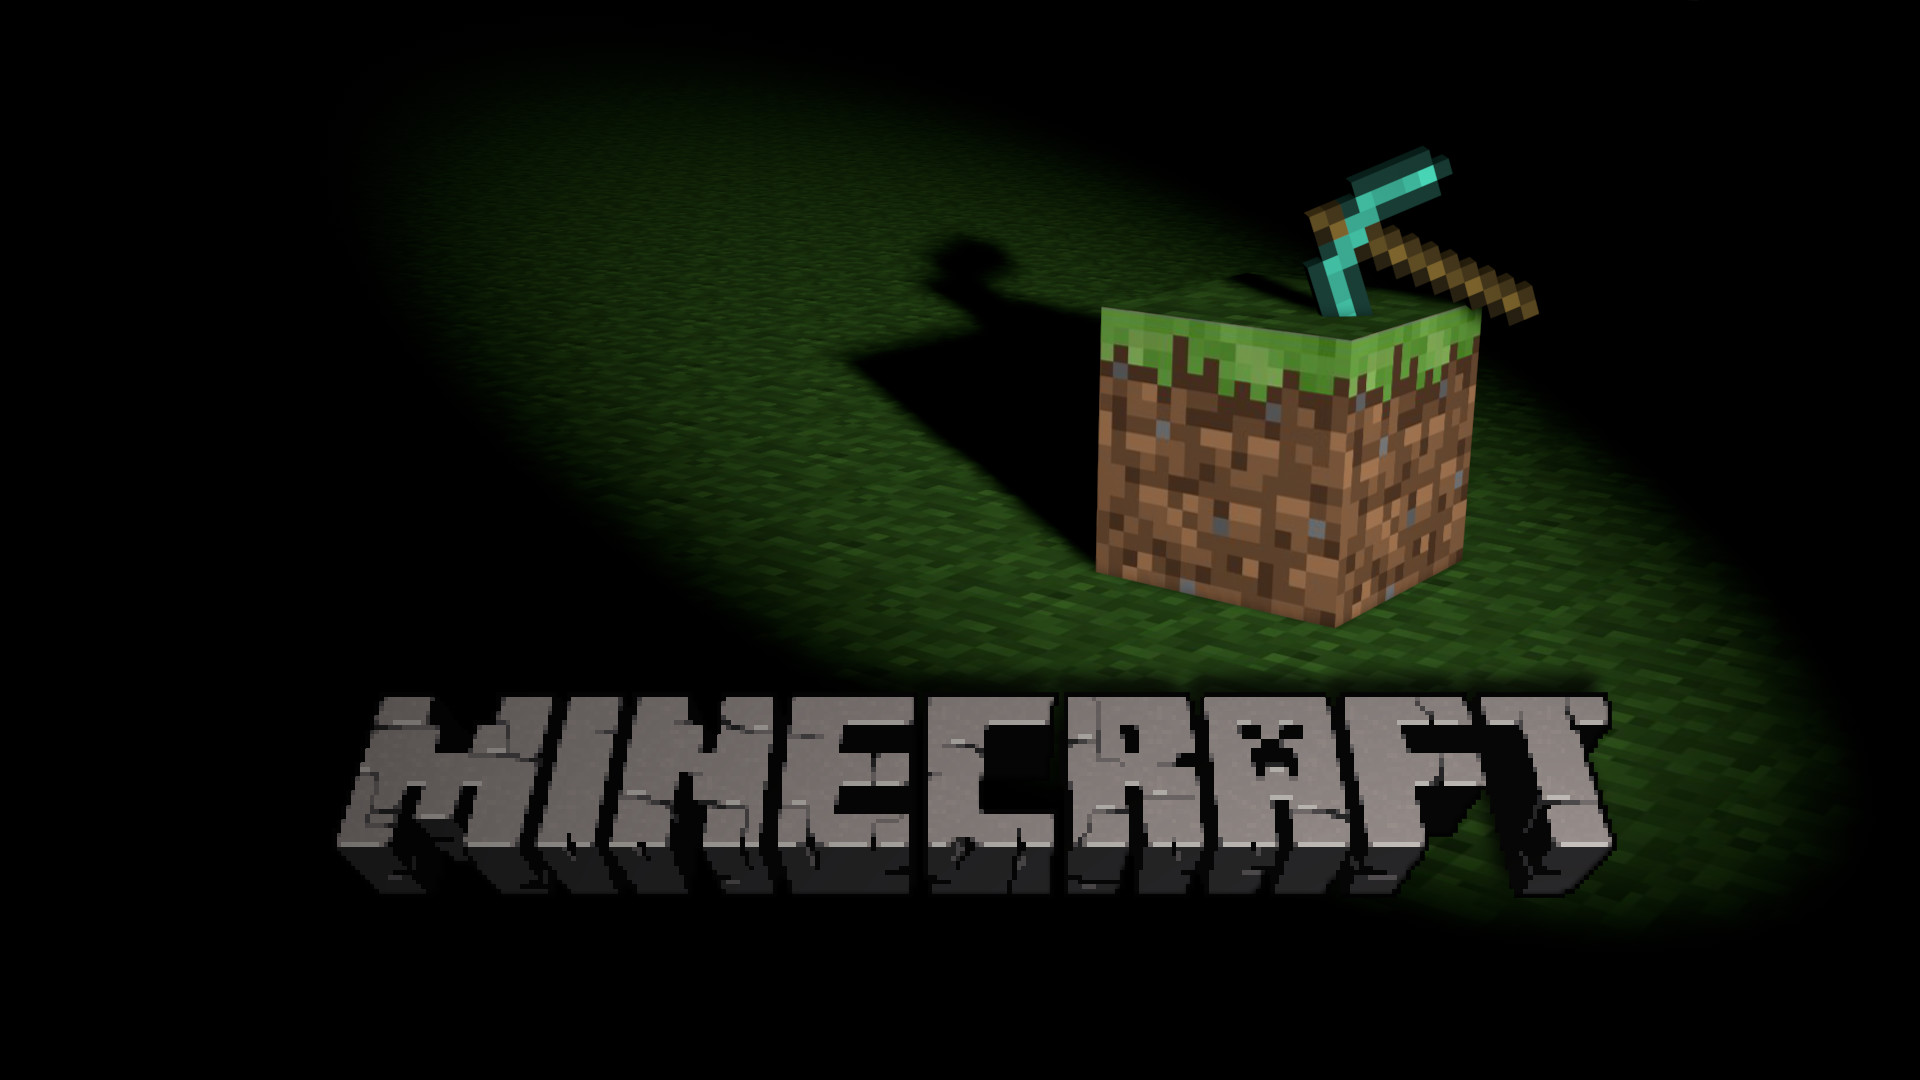 1920x1080 6 Cool Minecraft Backgrounds for Your Phone